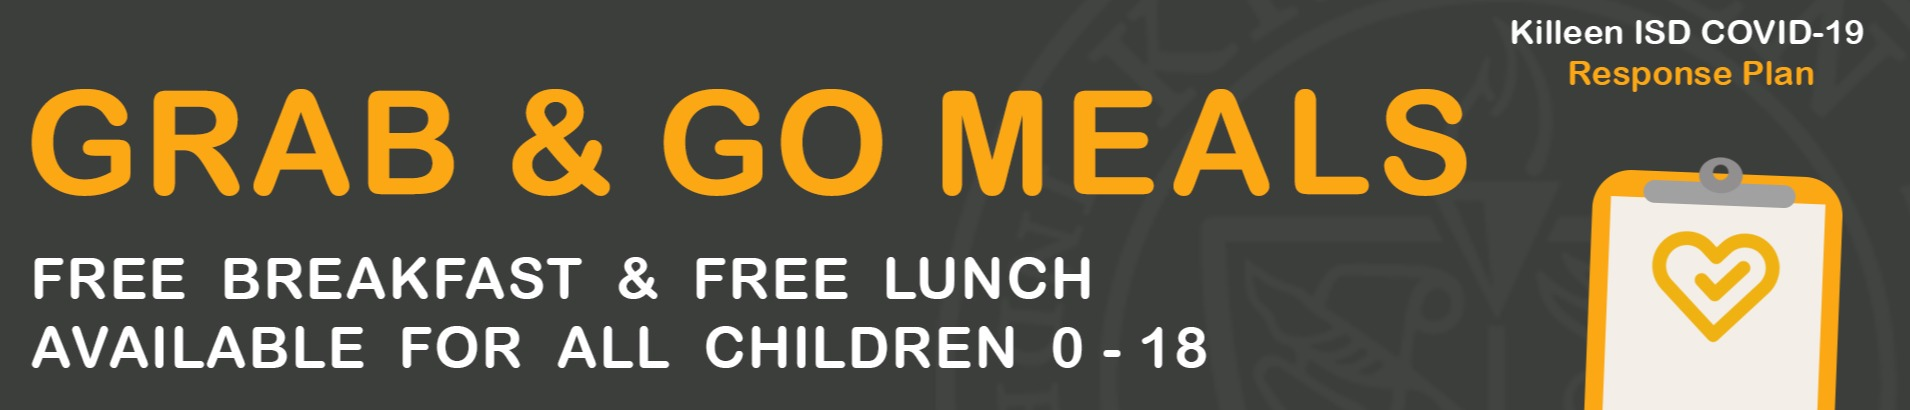 KIDS EAT FREE AT KISD! Grab & Go Meals Available To All Children Ages 0-18!